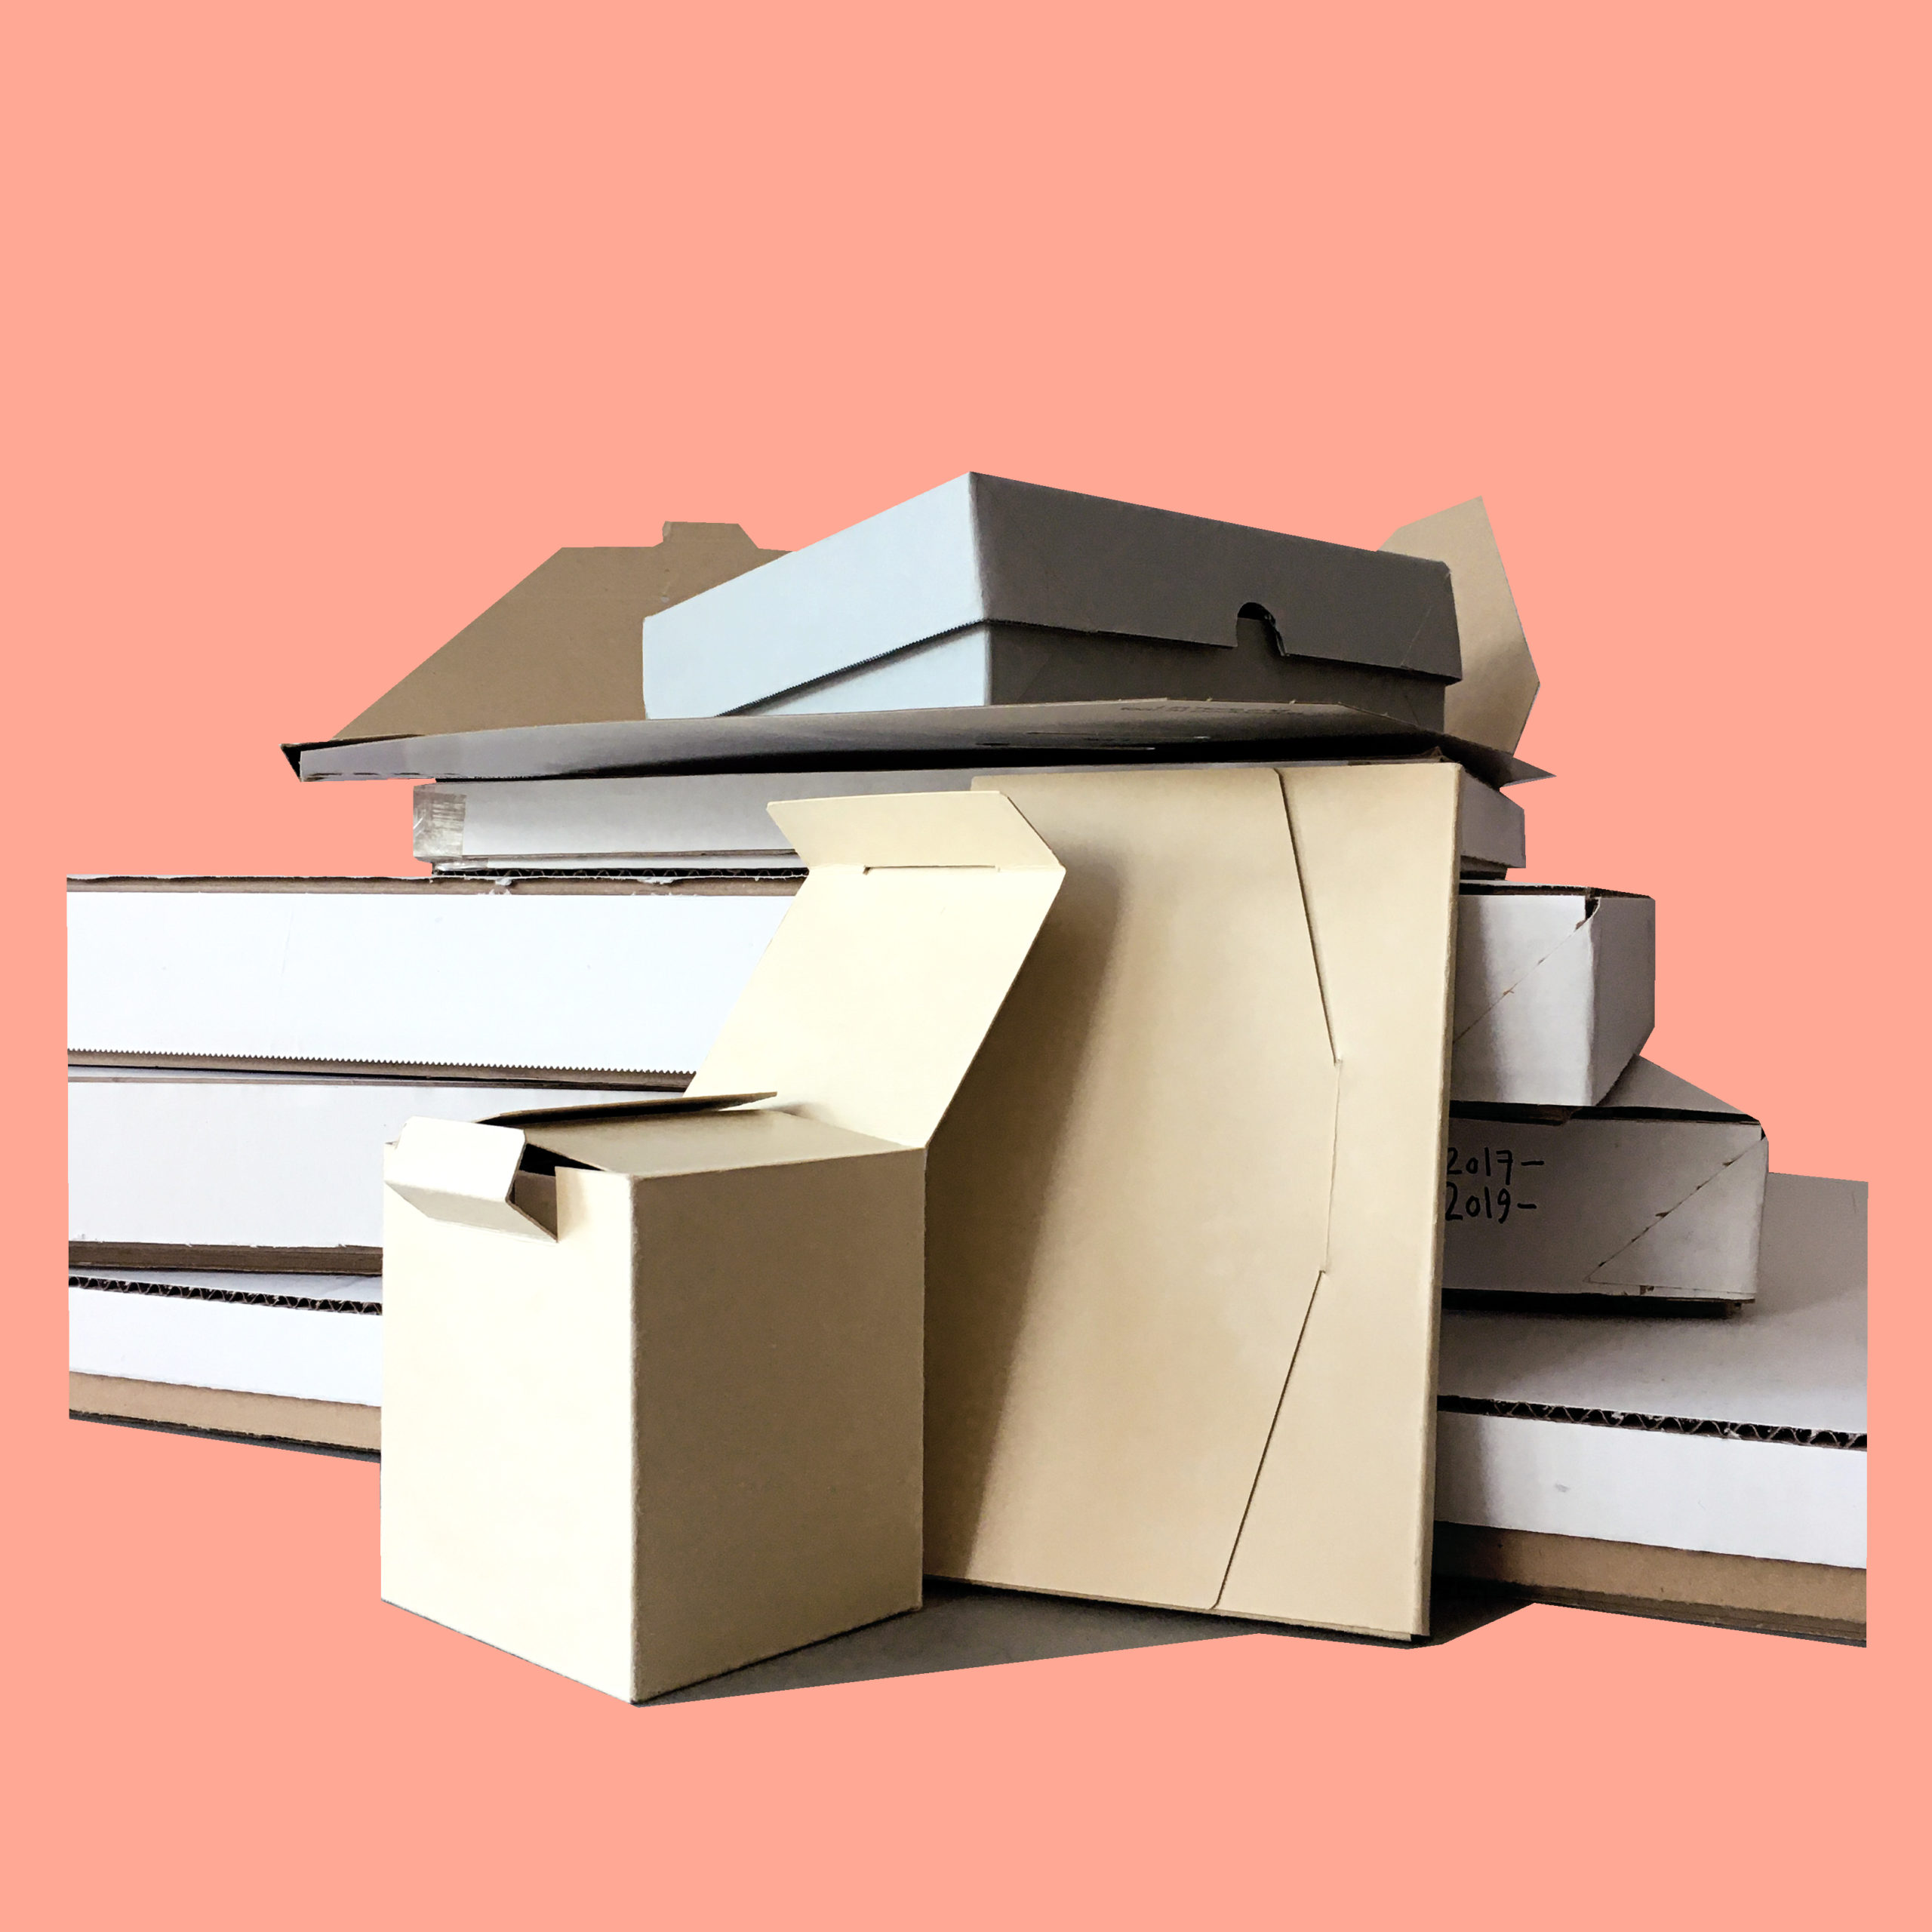 Storage boxes by Milcah Bassel. A collection of boxes made by Milcah for the purpose of storing or holding work. The boxes vary in size and shape.